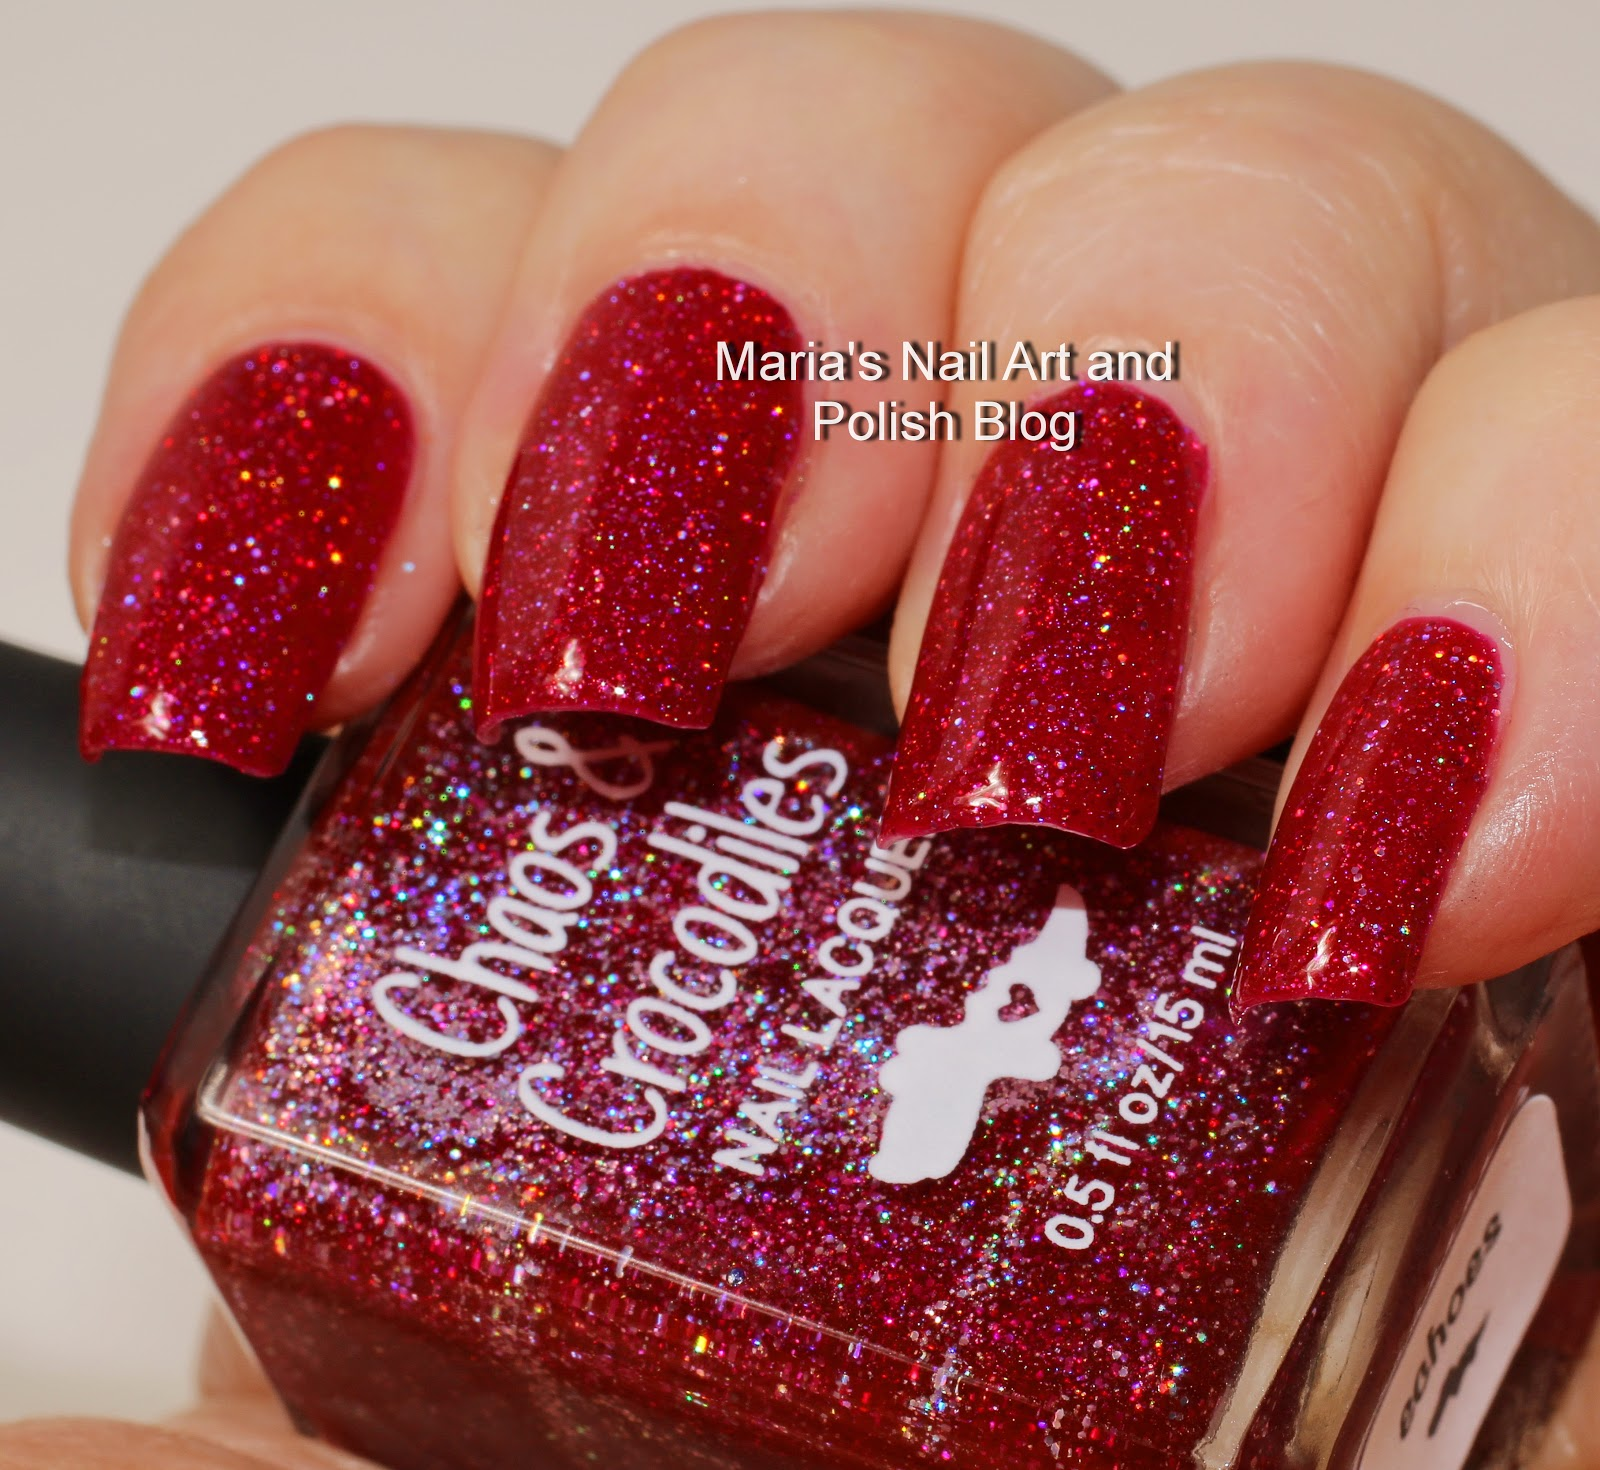 Marias Nail Art And Polish Blog Flushed With Stripes And: Remember You Can Click On The Photos To Enlarge Them